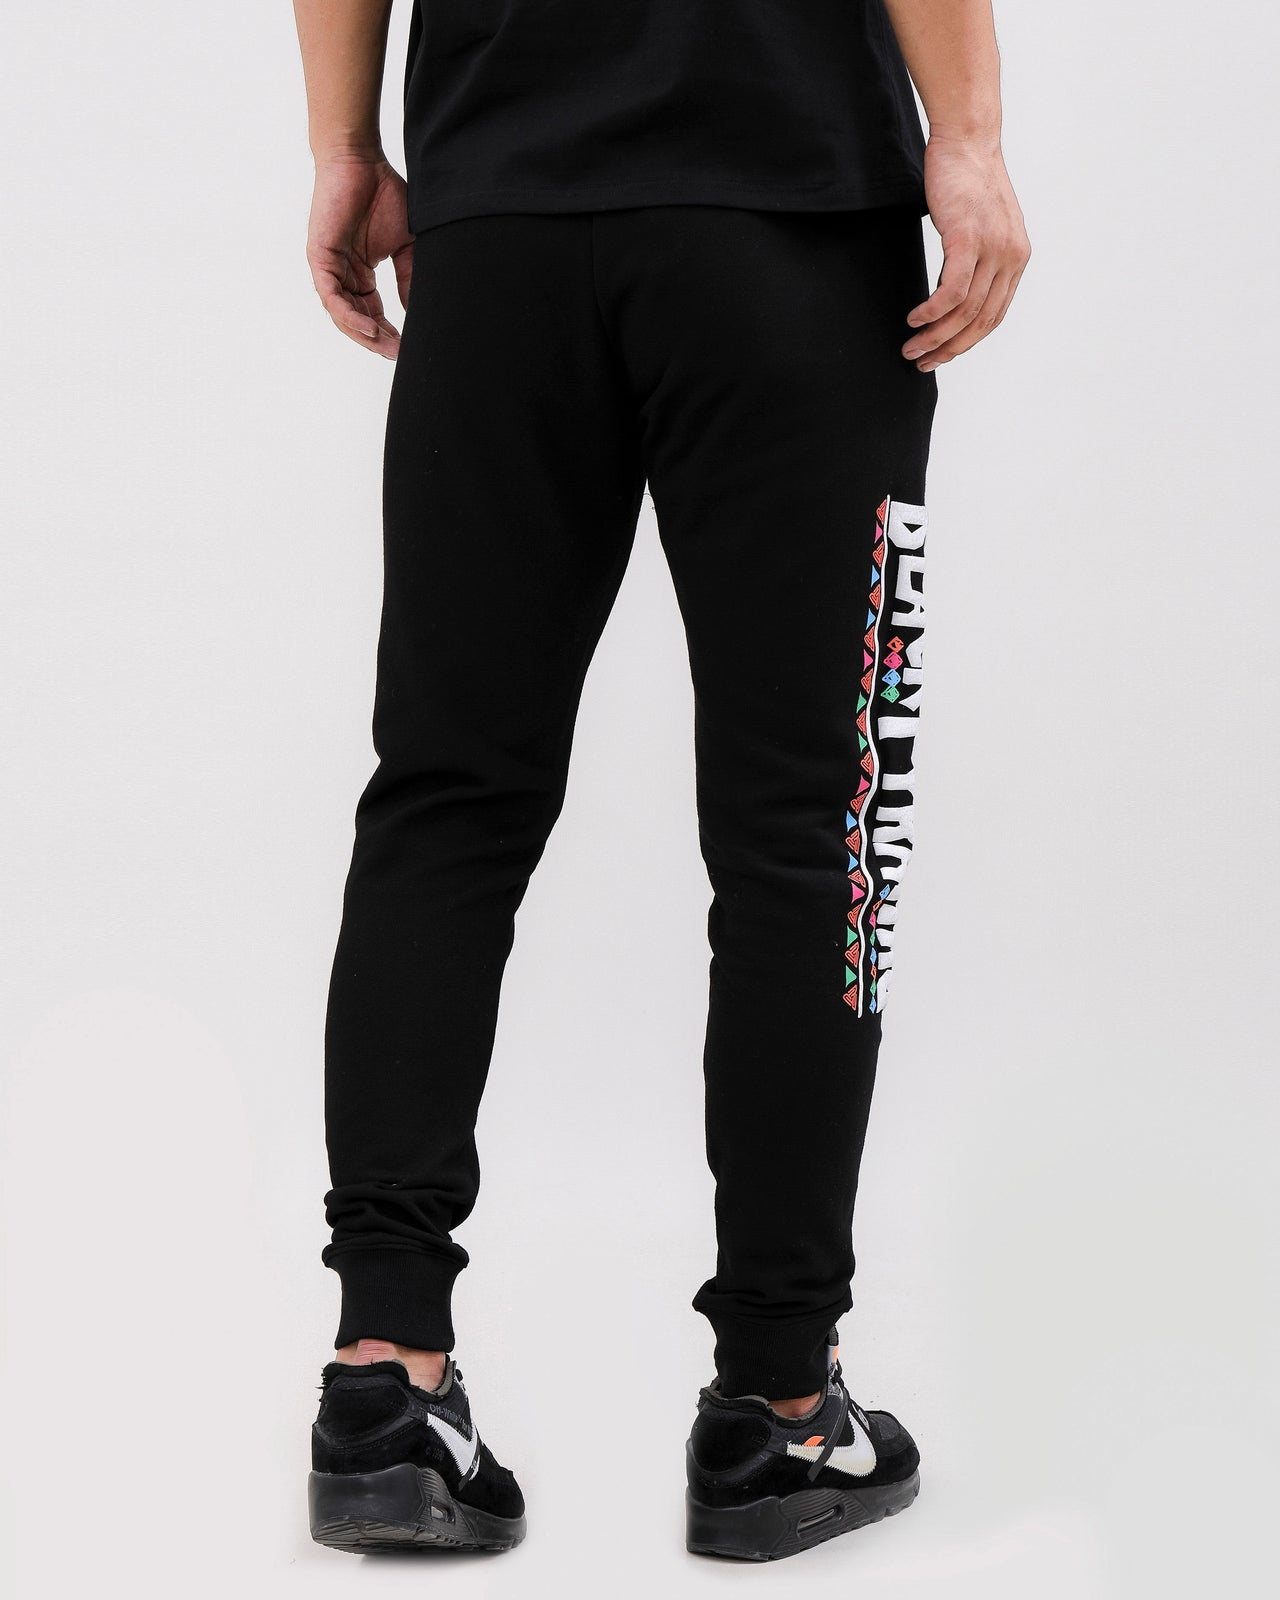 CHOICES PANTS-COLOR: BLACK